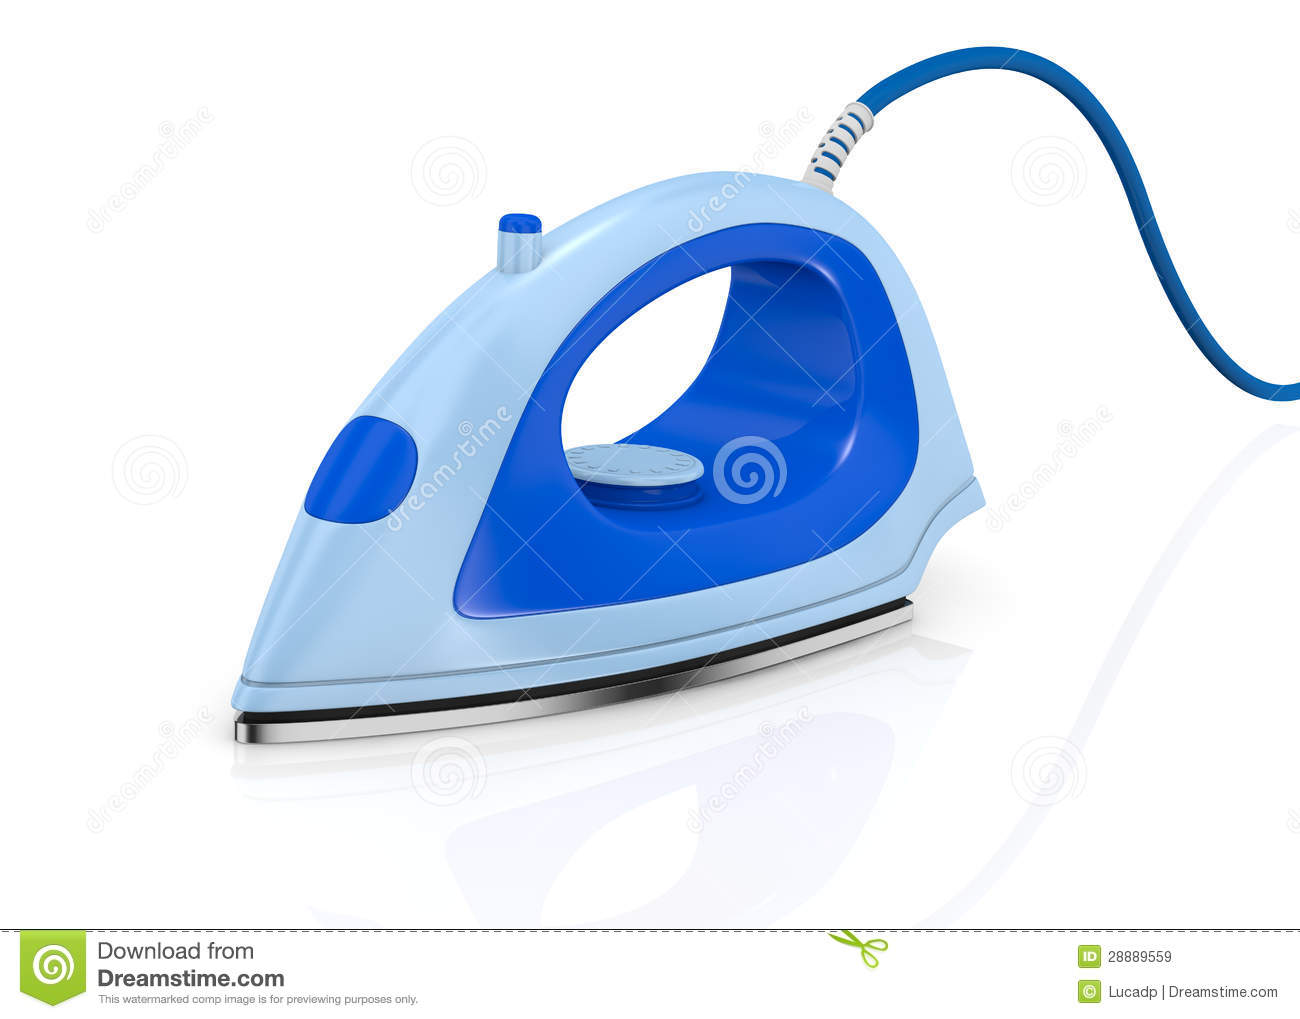 Download Steam iron stock illustration. Illustration of electrical - 28889559